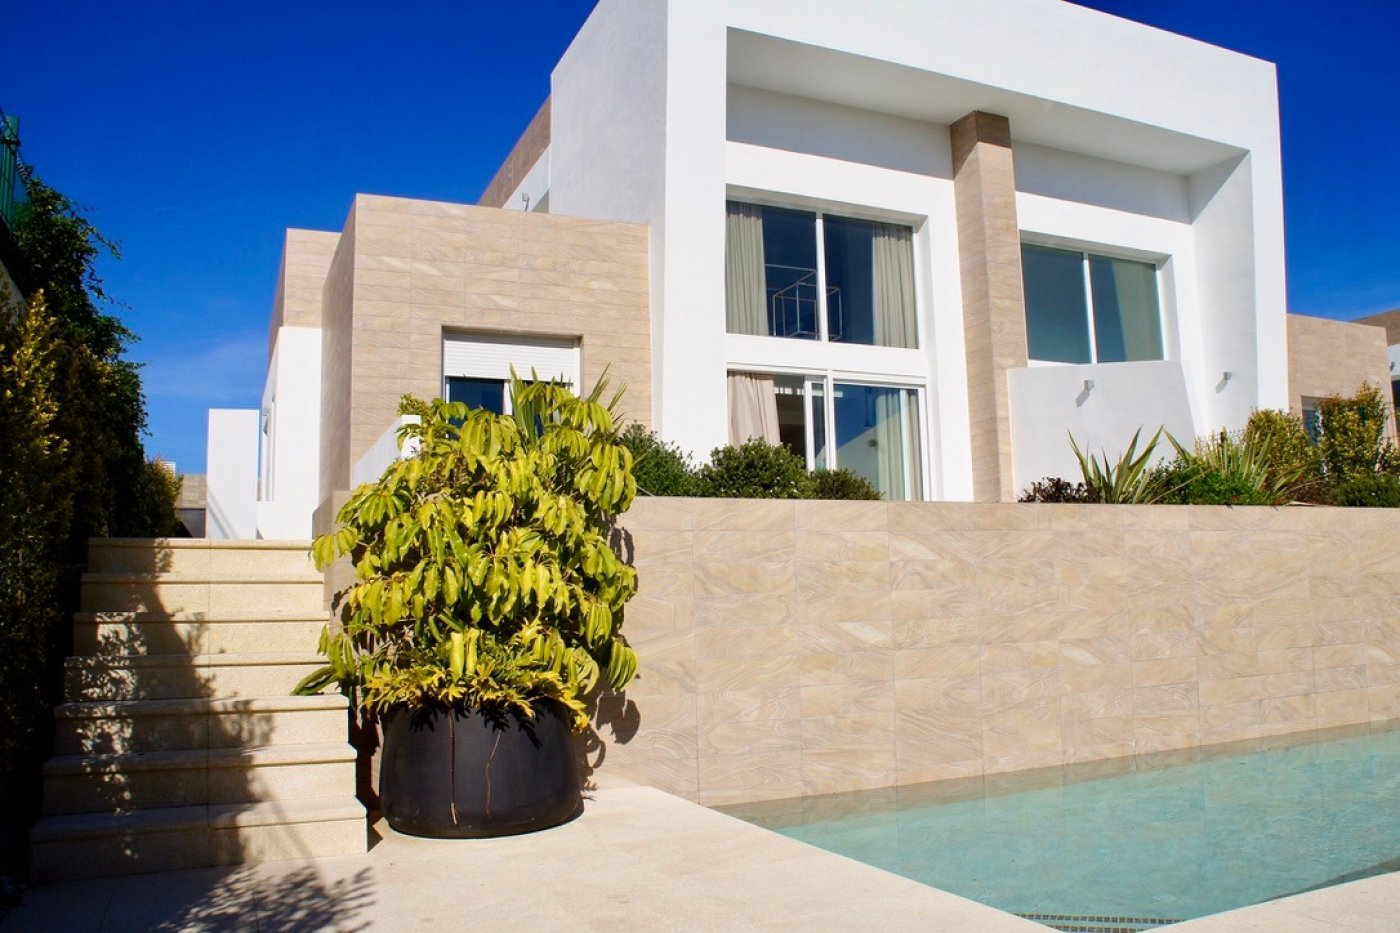 Villa de Lujo ref 3167 for sale in La Finca Golf Spain - Quality Homes Costa Cálida